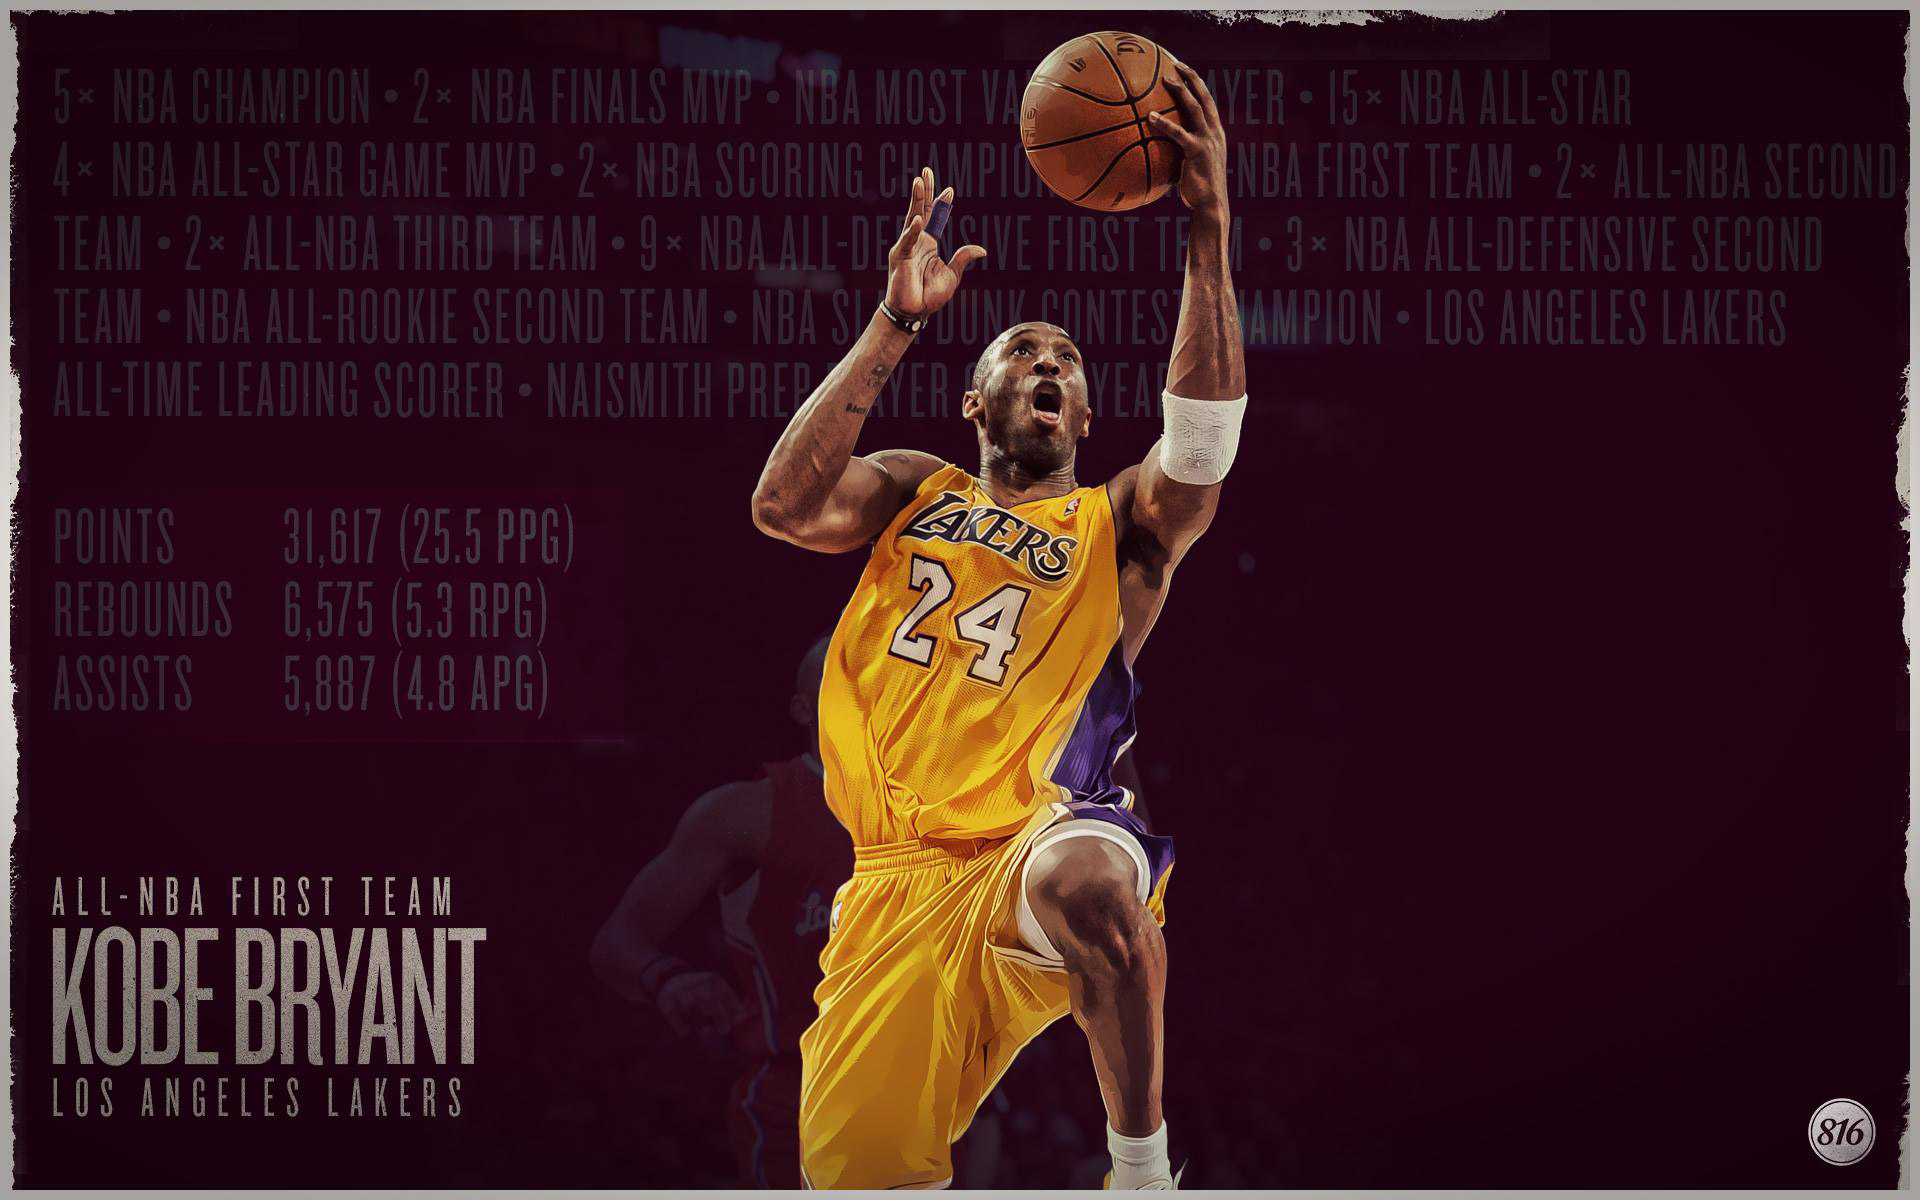 Kobe bryant 2013 all nba first team 19201200 wallpaper kobe bryant 2013 all nba first team 19201200 wallpaper voltagebd Image collections